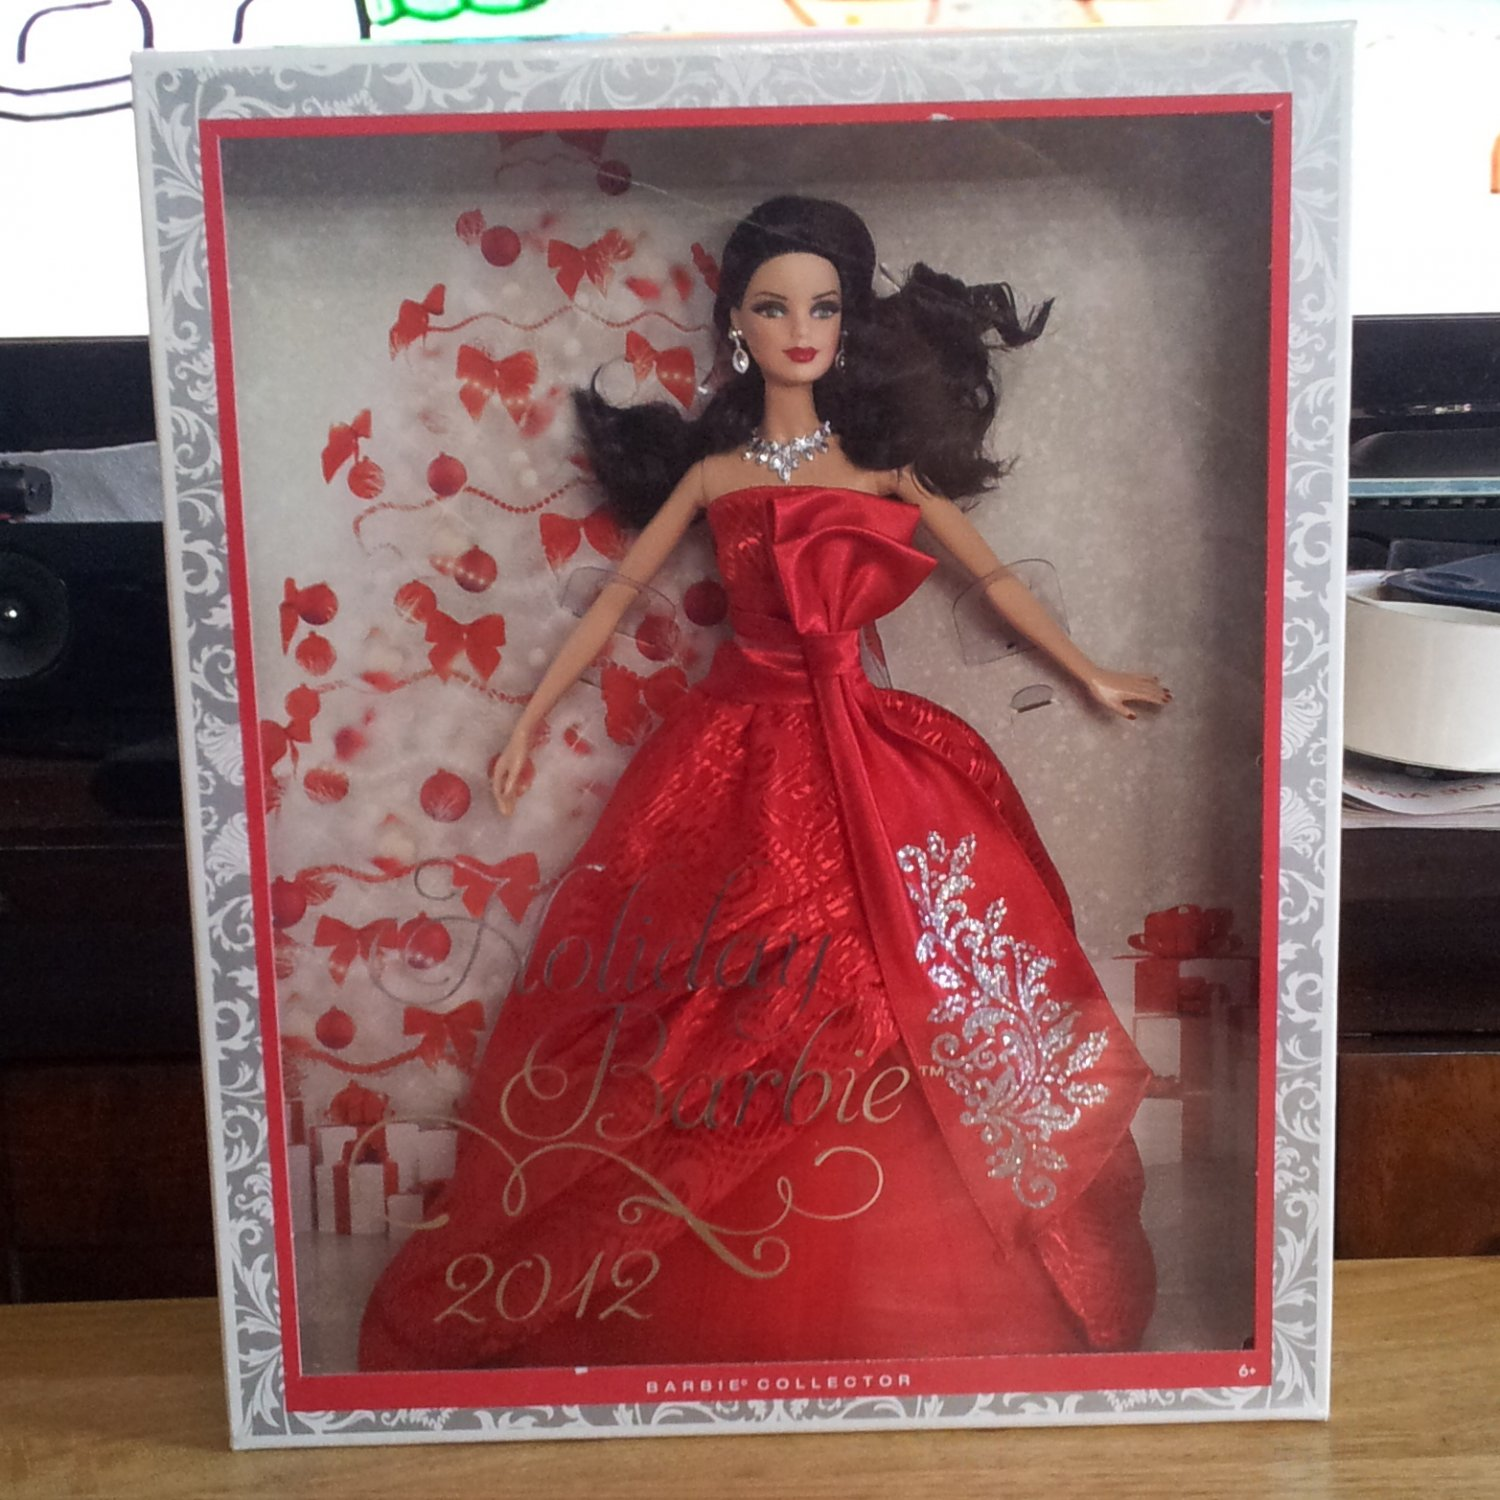 2012 Kmart Exclusive Brunette Holiday Barbie Doll NEW